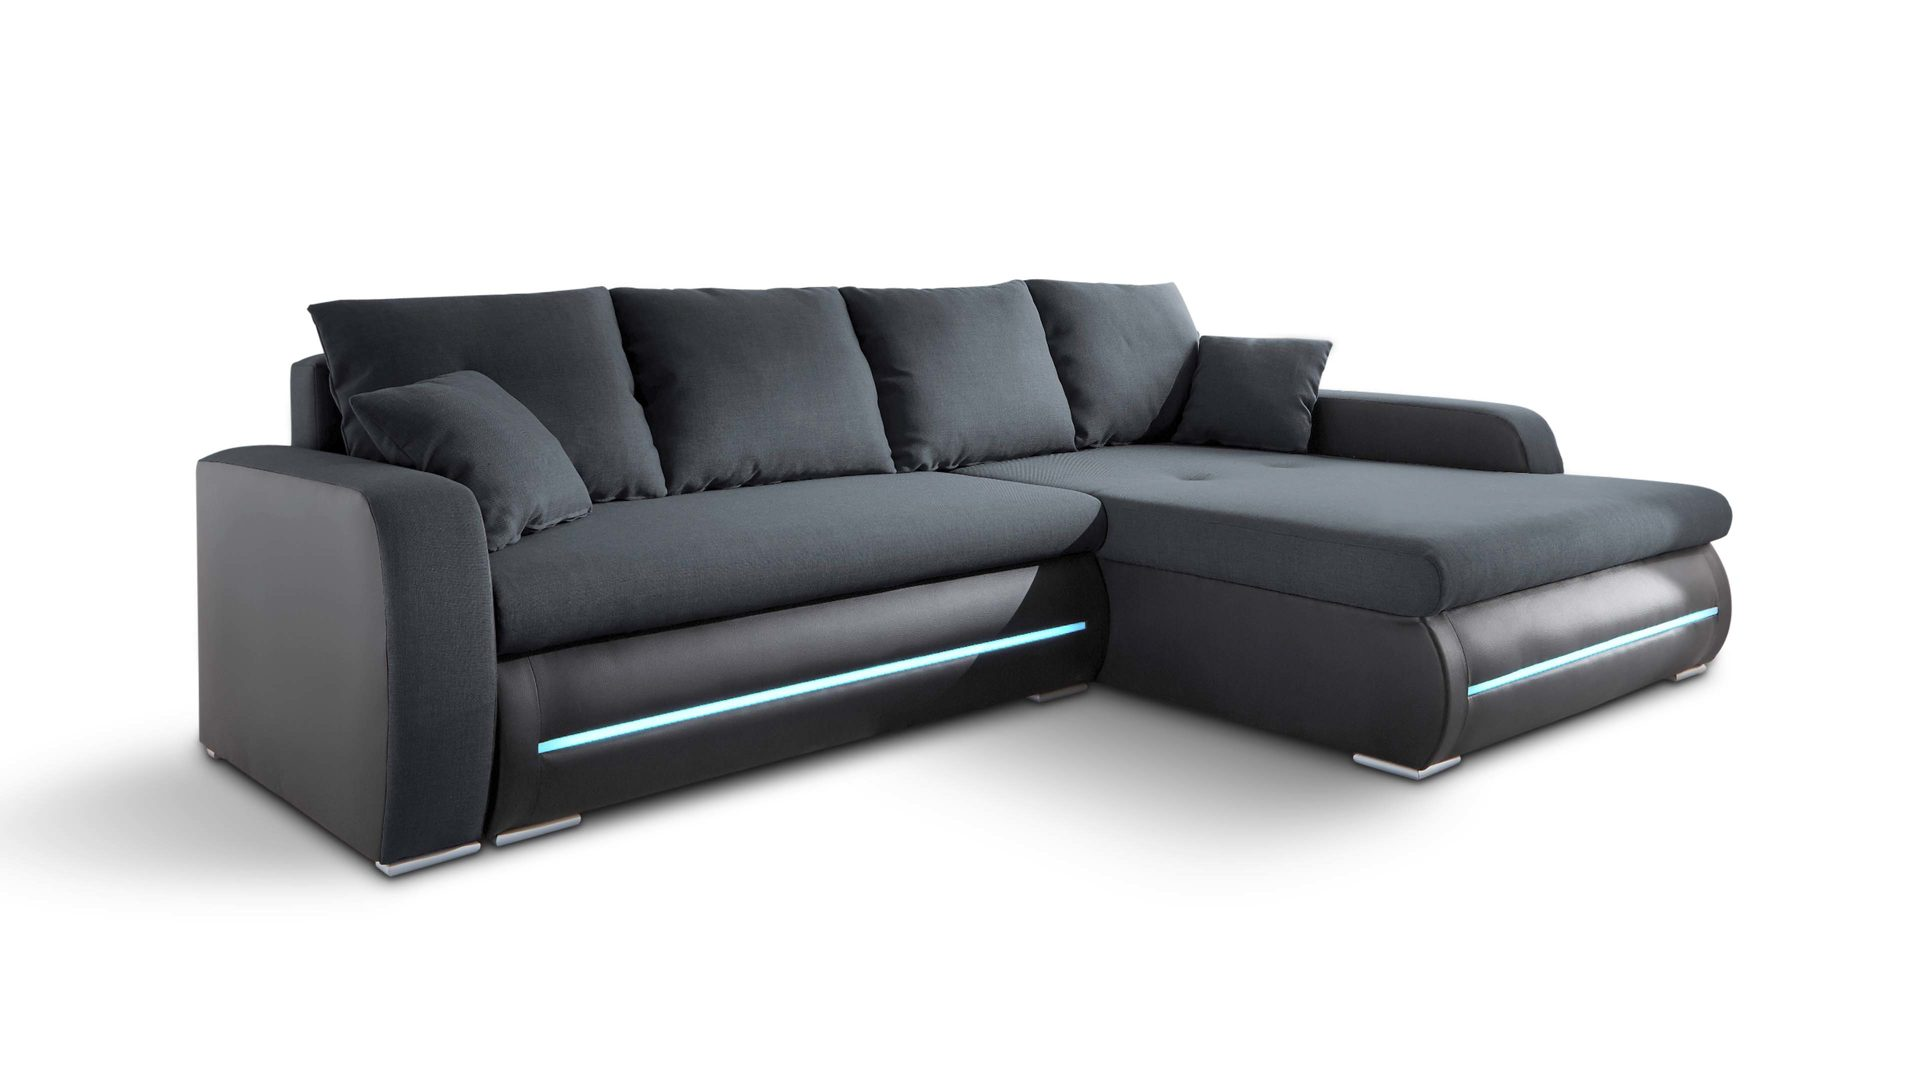 ecksofa bzw eckcouch mit led beleuchtung glei ner. Black Bedroom Furniture Sets. Home Design Ideas